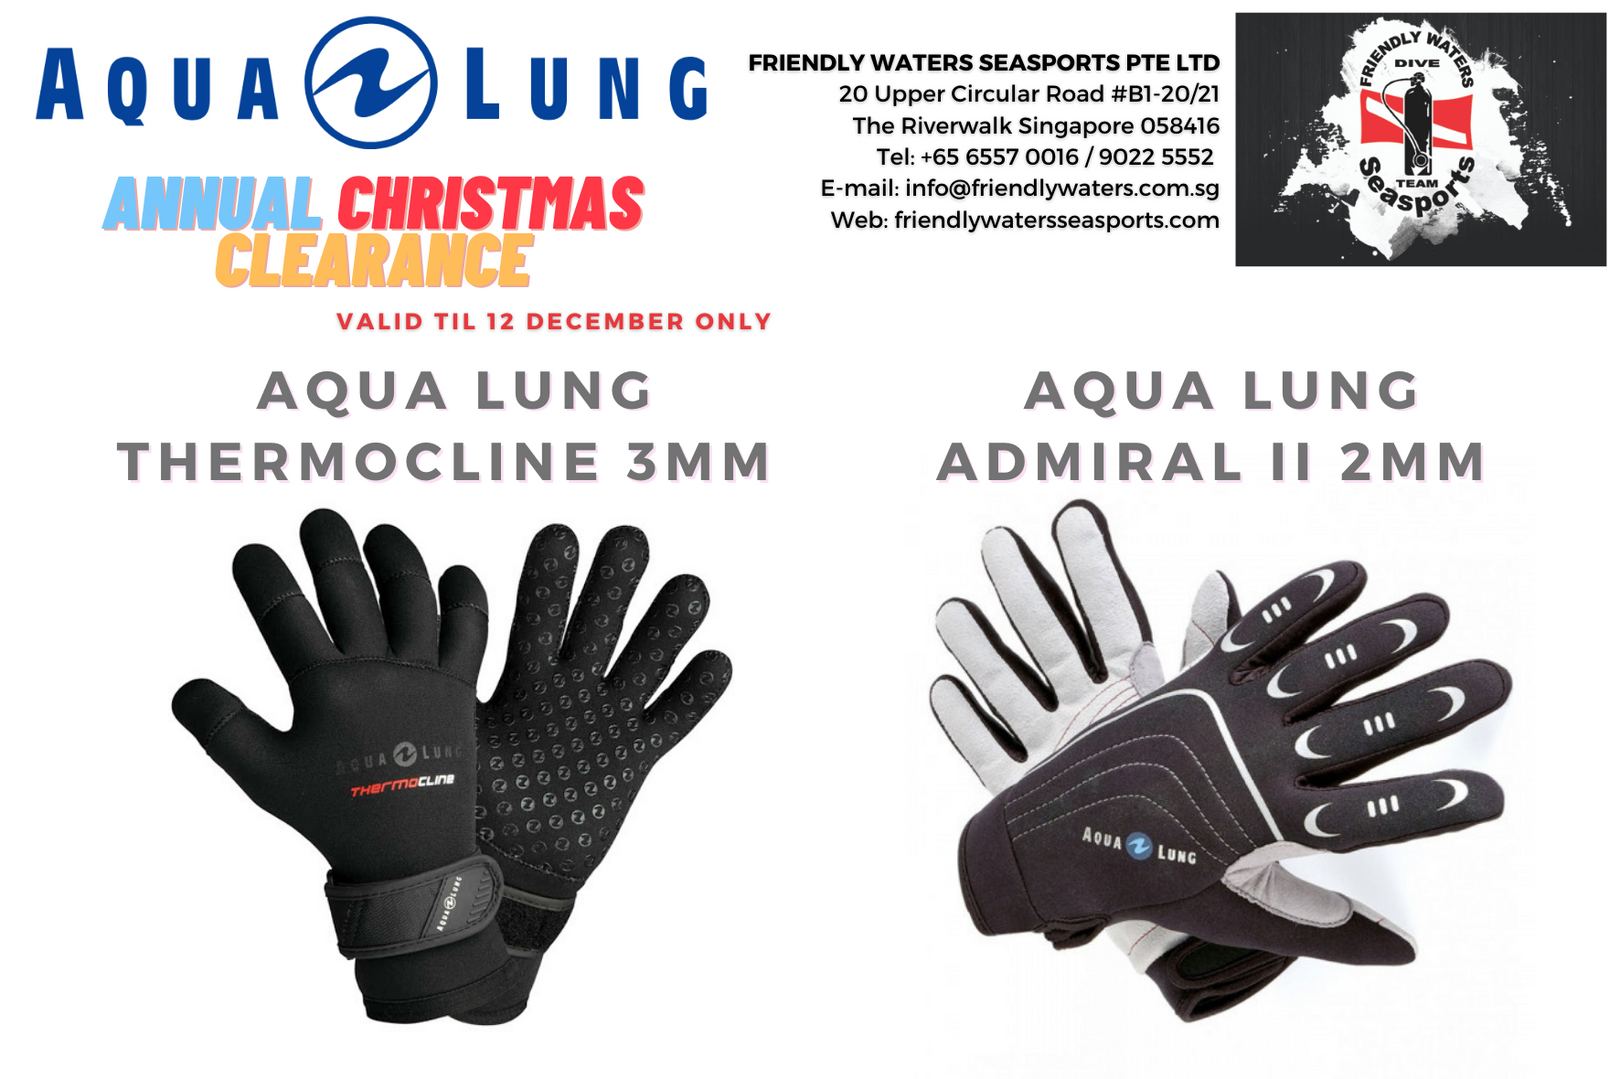 Annual Christmas Clearance - Aqua Lung Diving Gloves